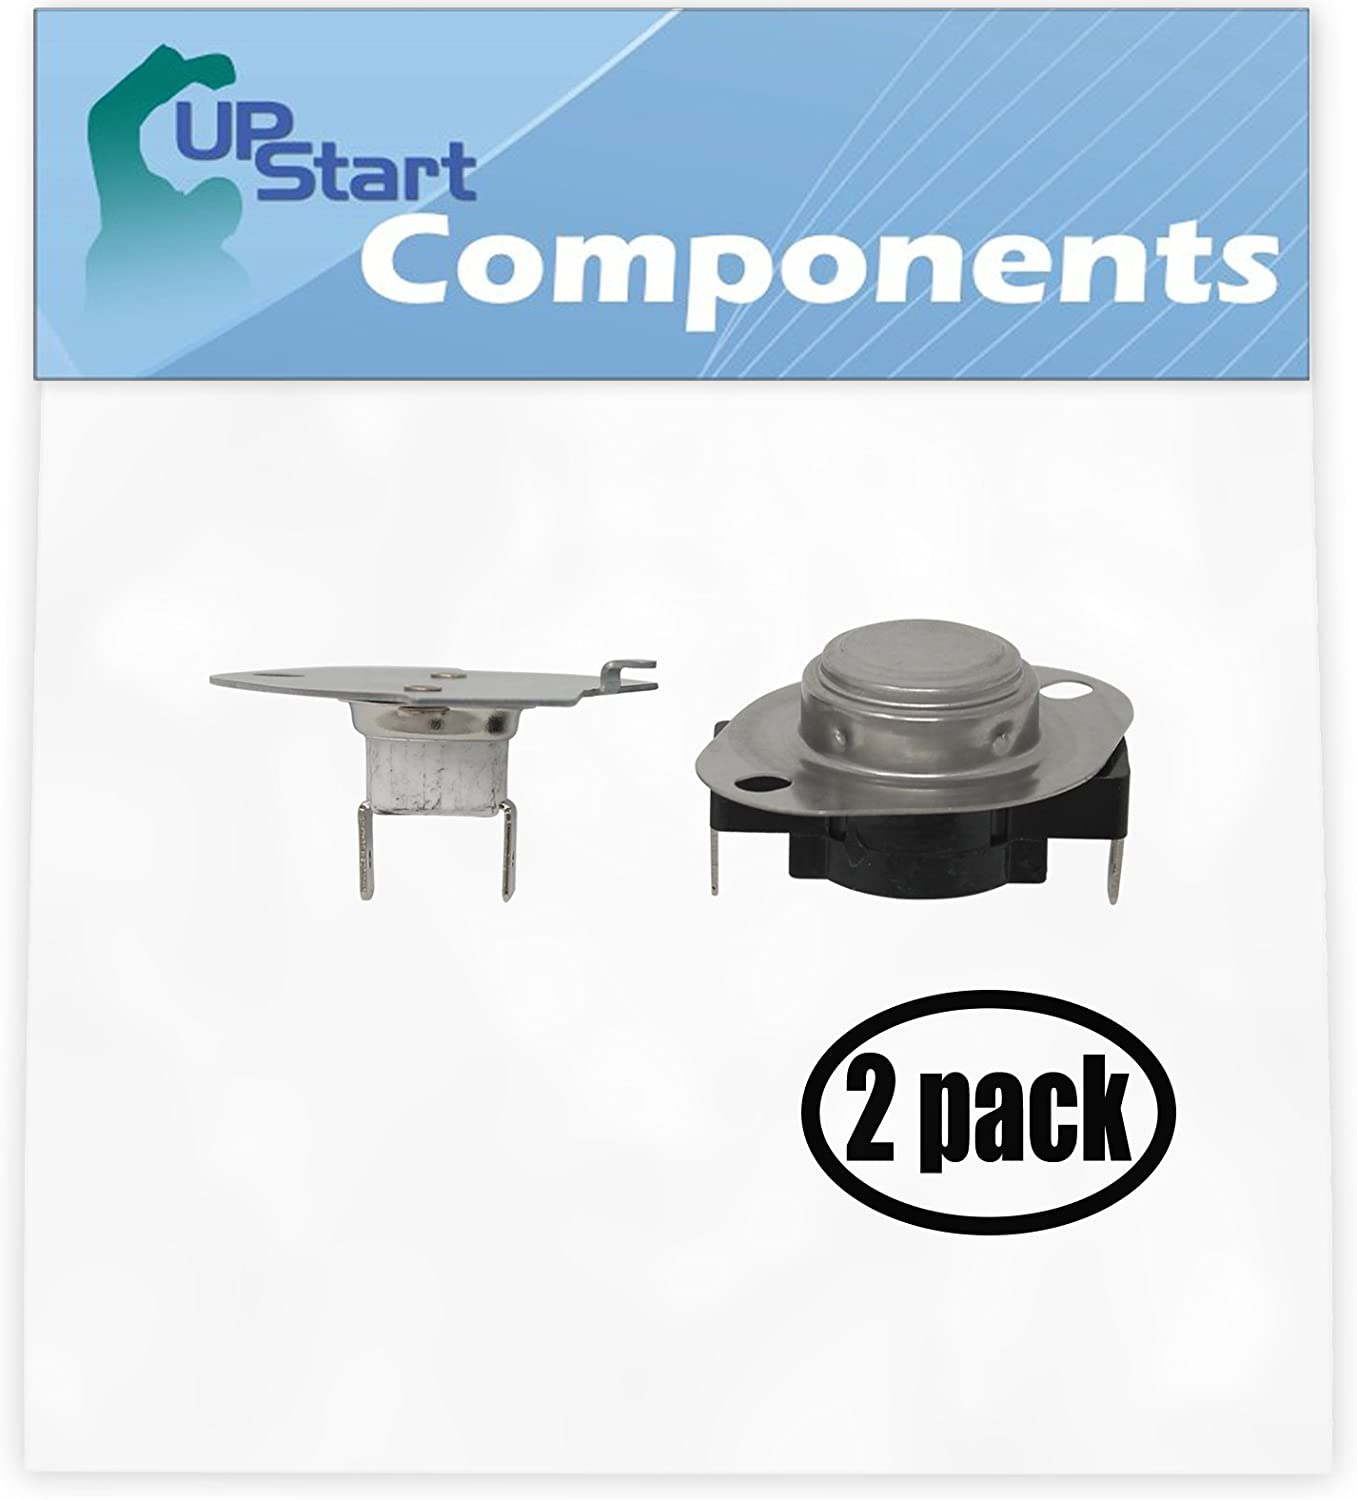 2 Pack Replacement 279769 Thermal Cut-Off for Whirlpool LER7646AN0 Residential Electric Dryer